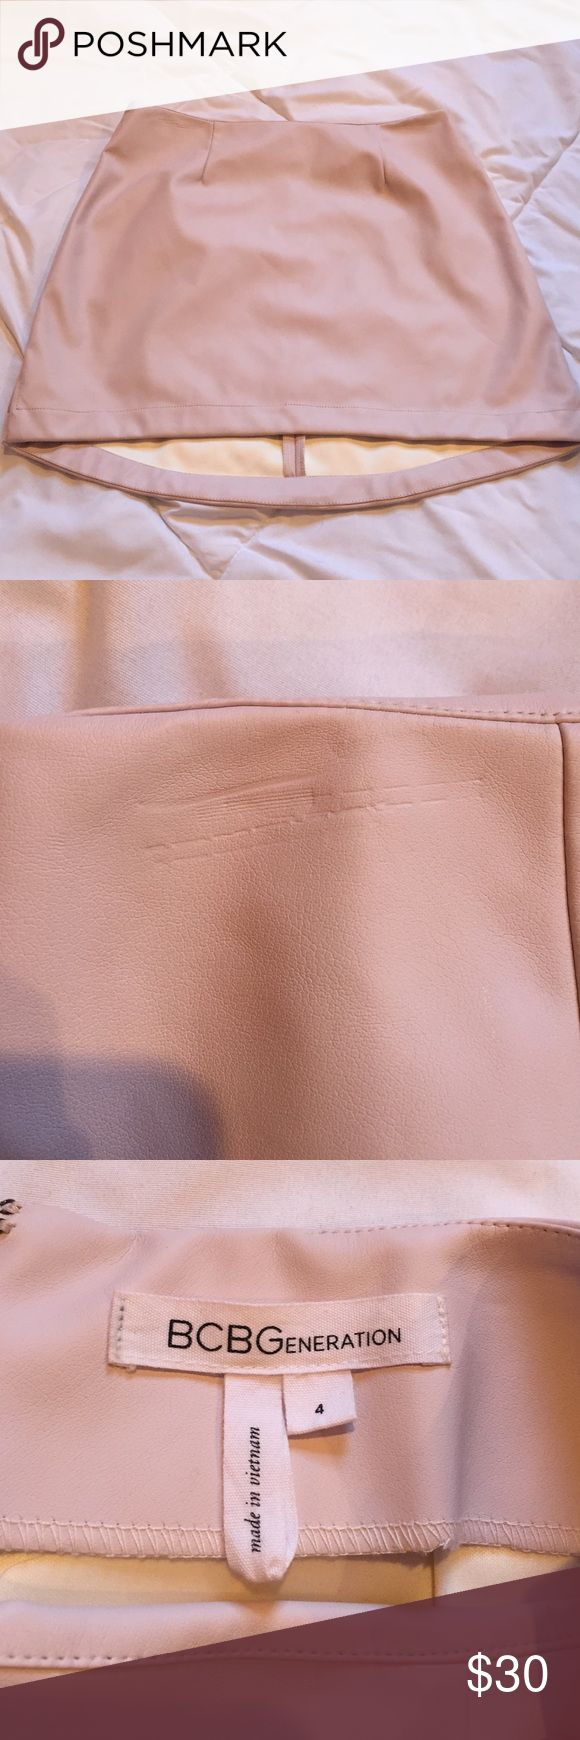 BCBG generation light pink faux leather skirt It is a size 4 regular waist pink leather mini skirt that is shorter in the front and longer in the back. I wore it once. It is in great condition besides the scratches at the top sides of the skirt (pictured above). BCBGeneration Skirts Mini